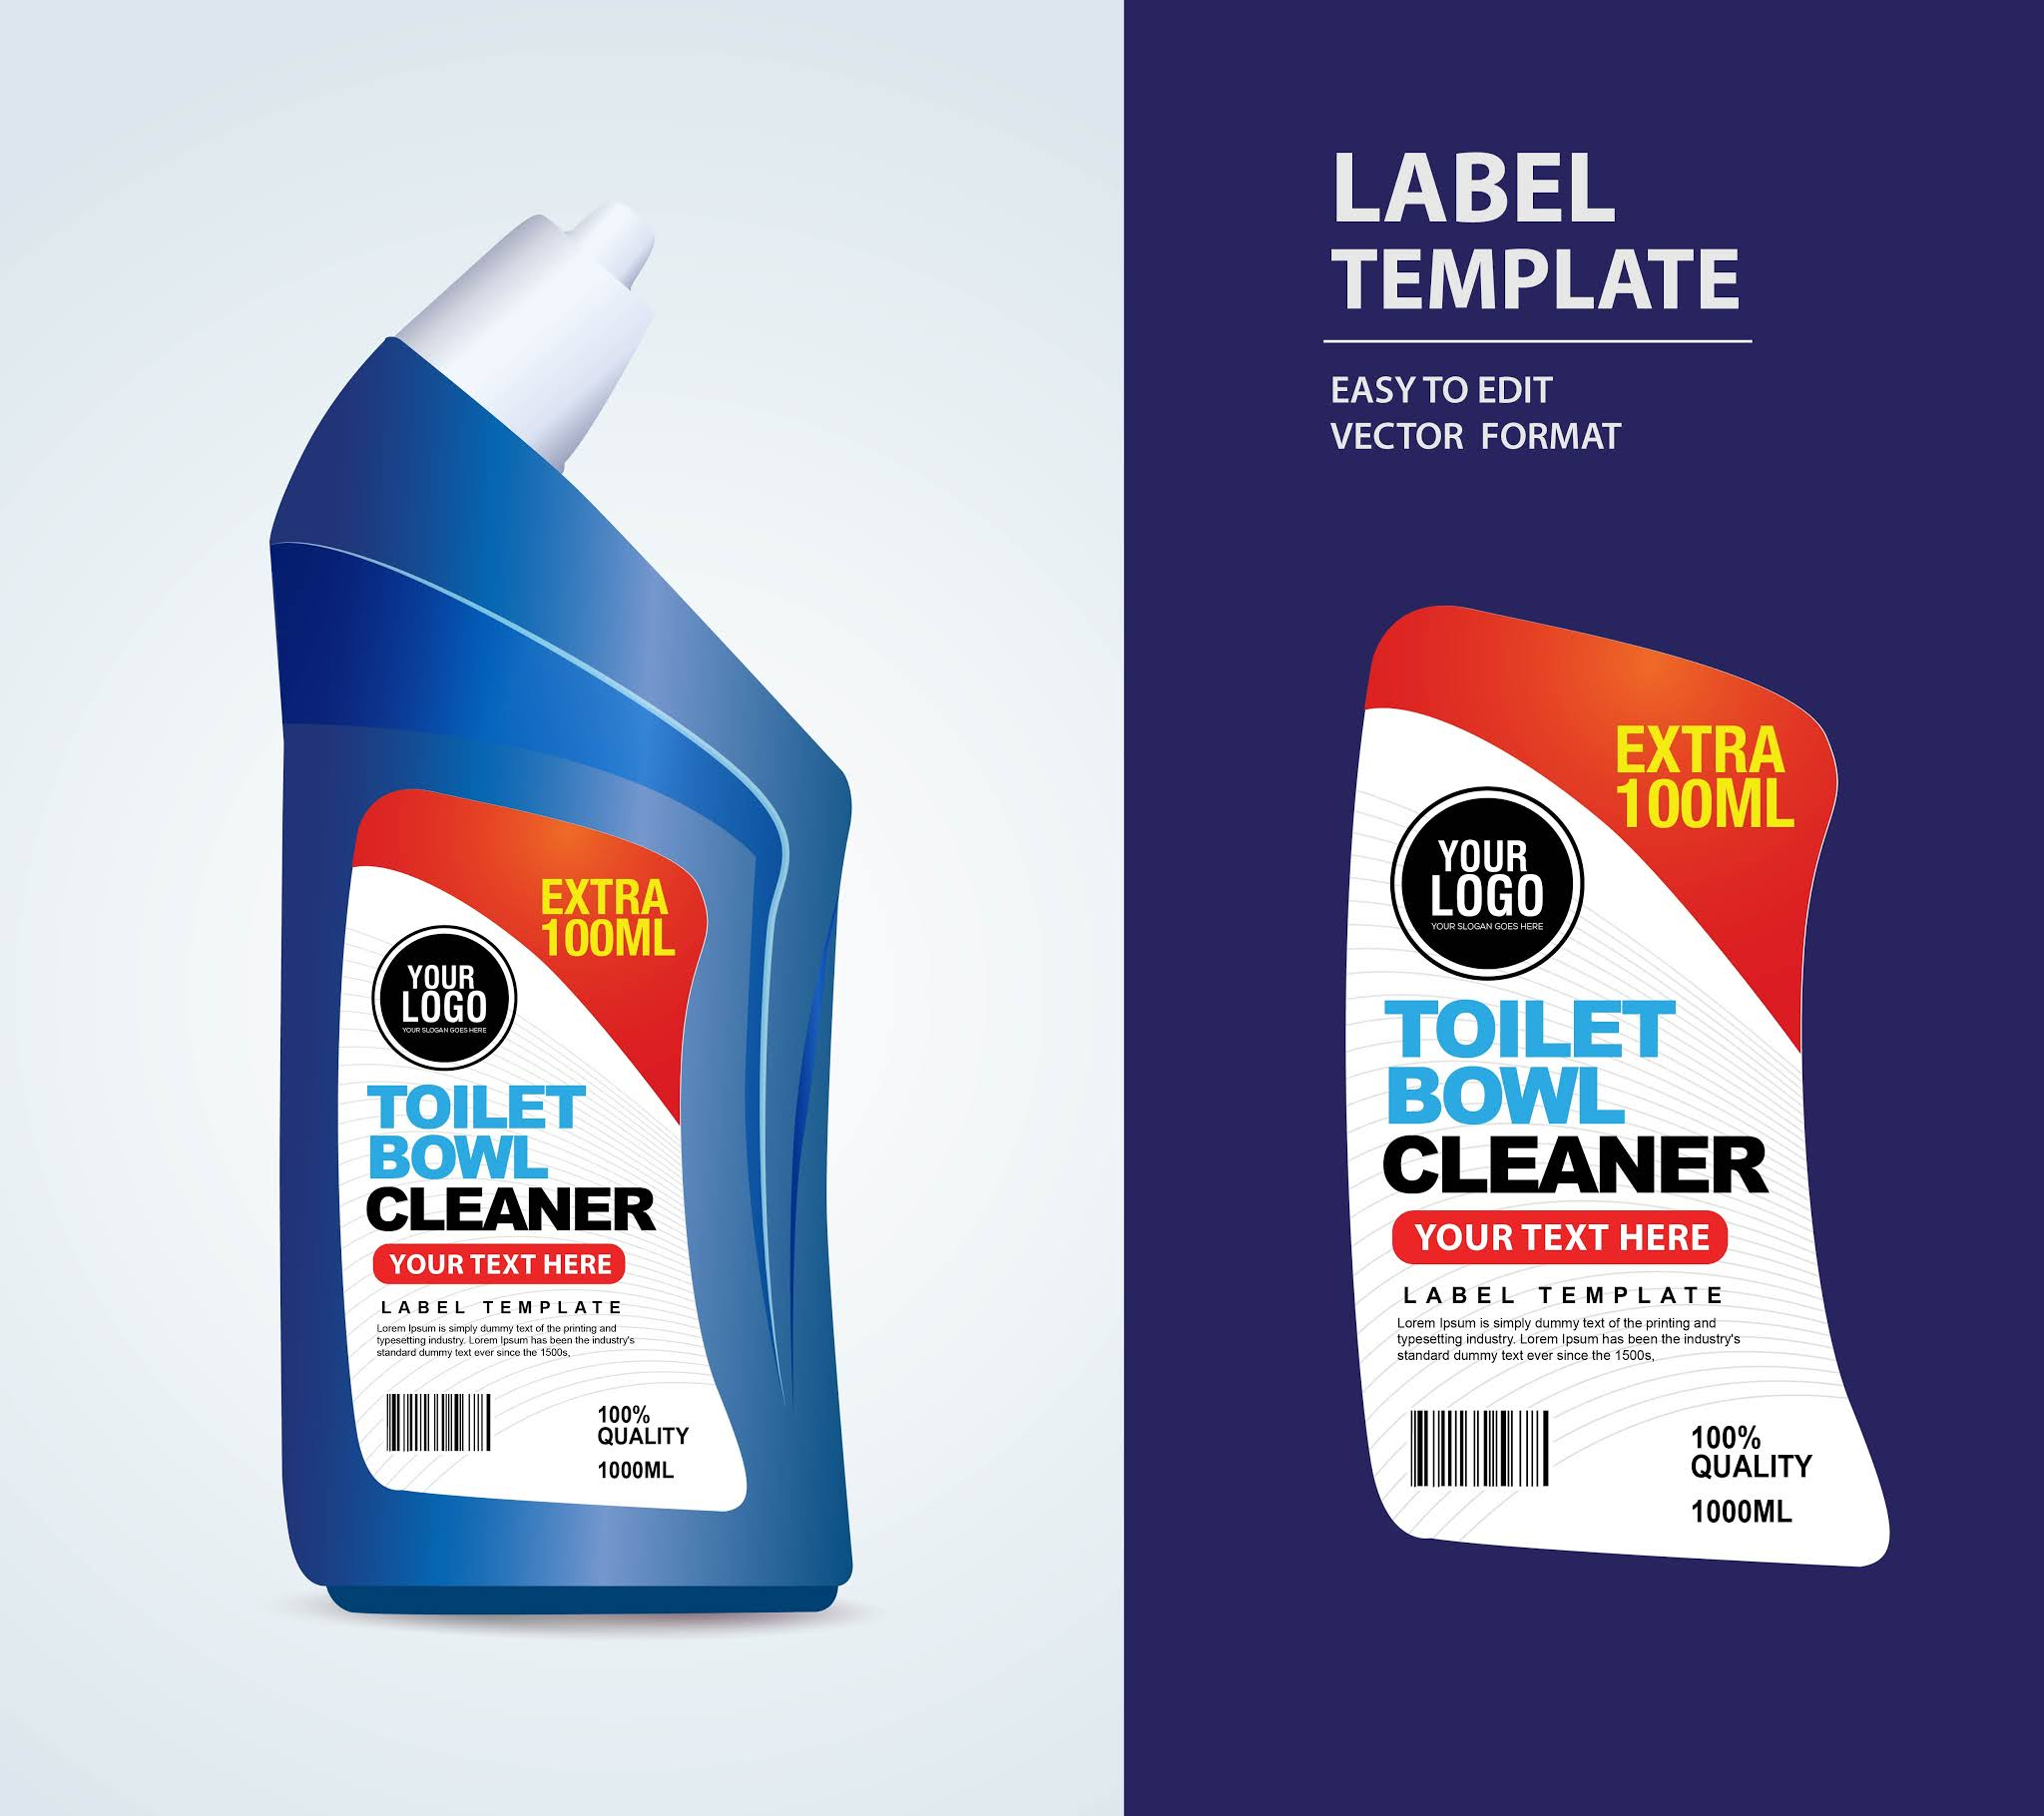 Detergent product designs stickers cleaning products in vector eps format